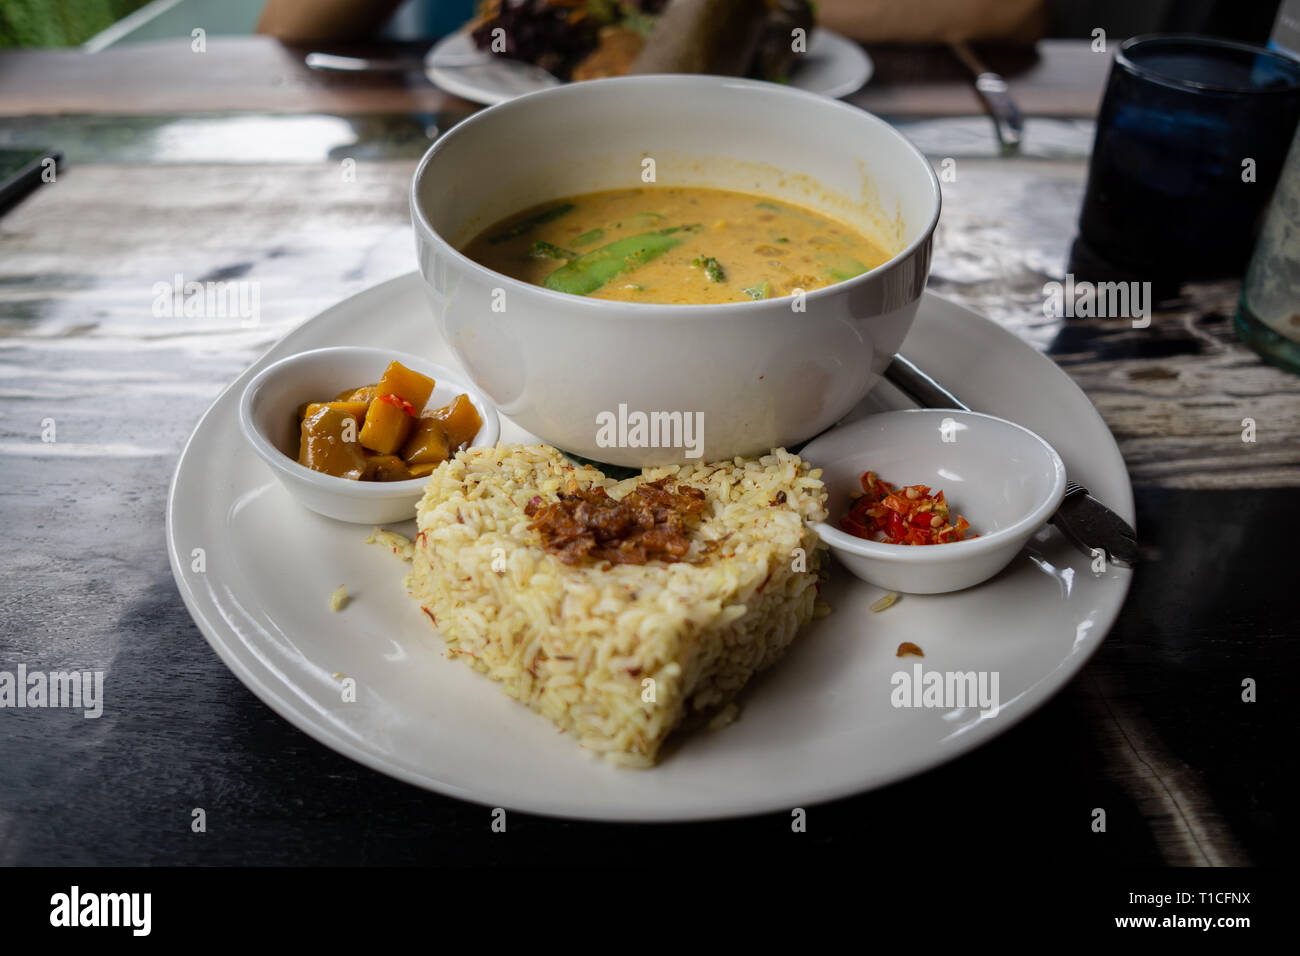 Delicious rice and a bowl of soup with spicy sauce make this lunch very tasty and delicious. It is organic and healthy too - Stock Image